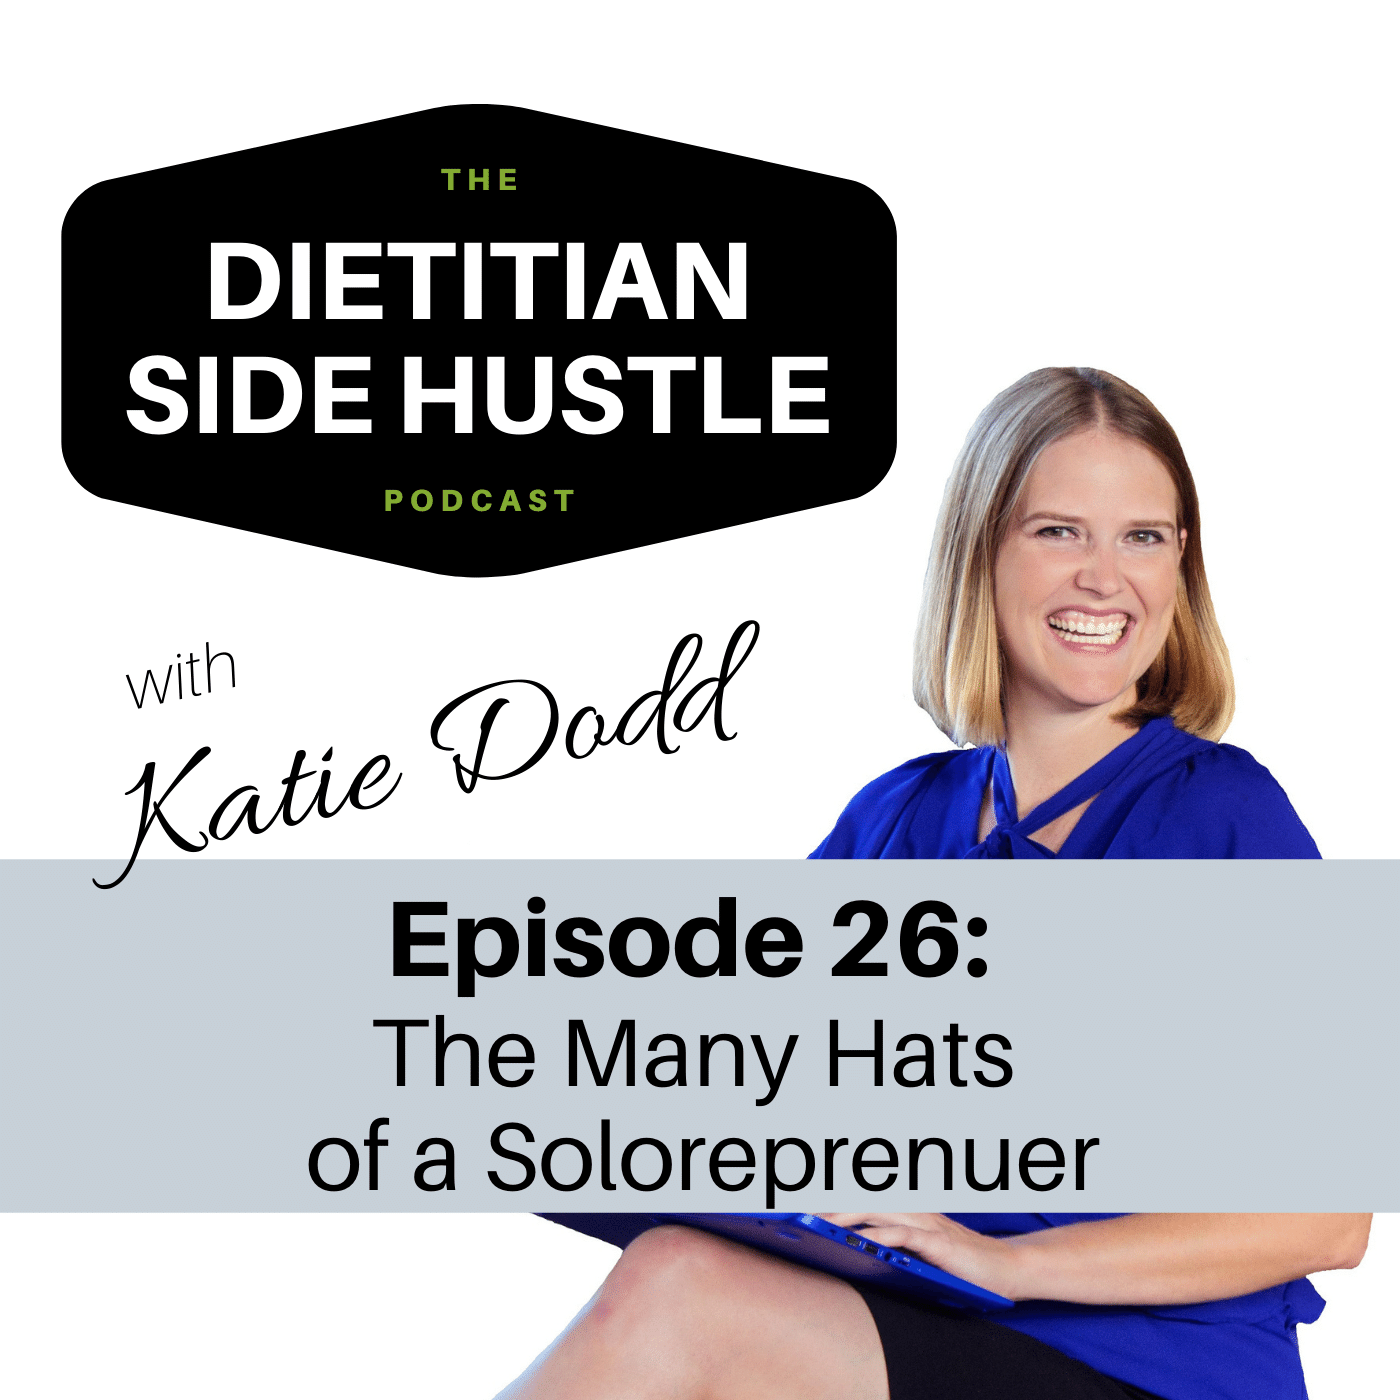 DSH 026: The Many Hats of a Soloprenuer